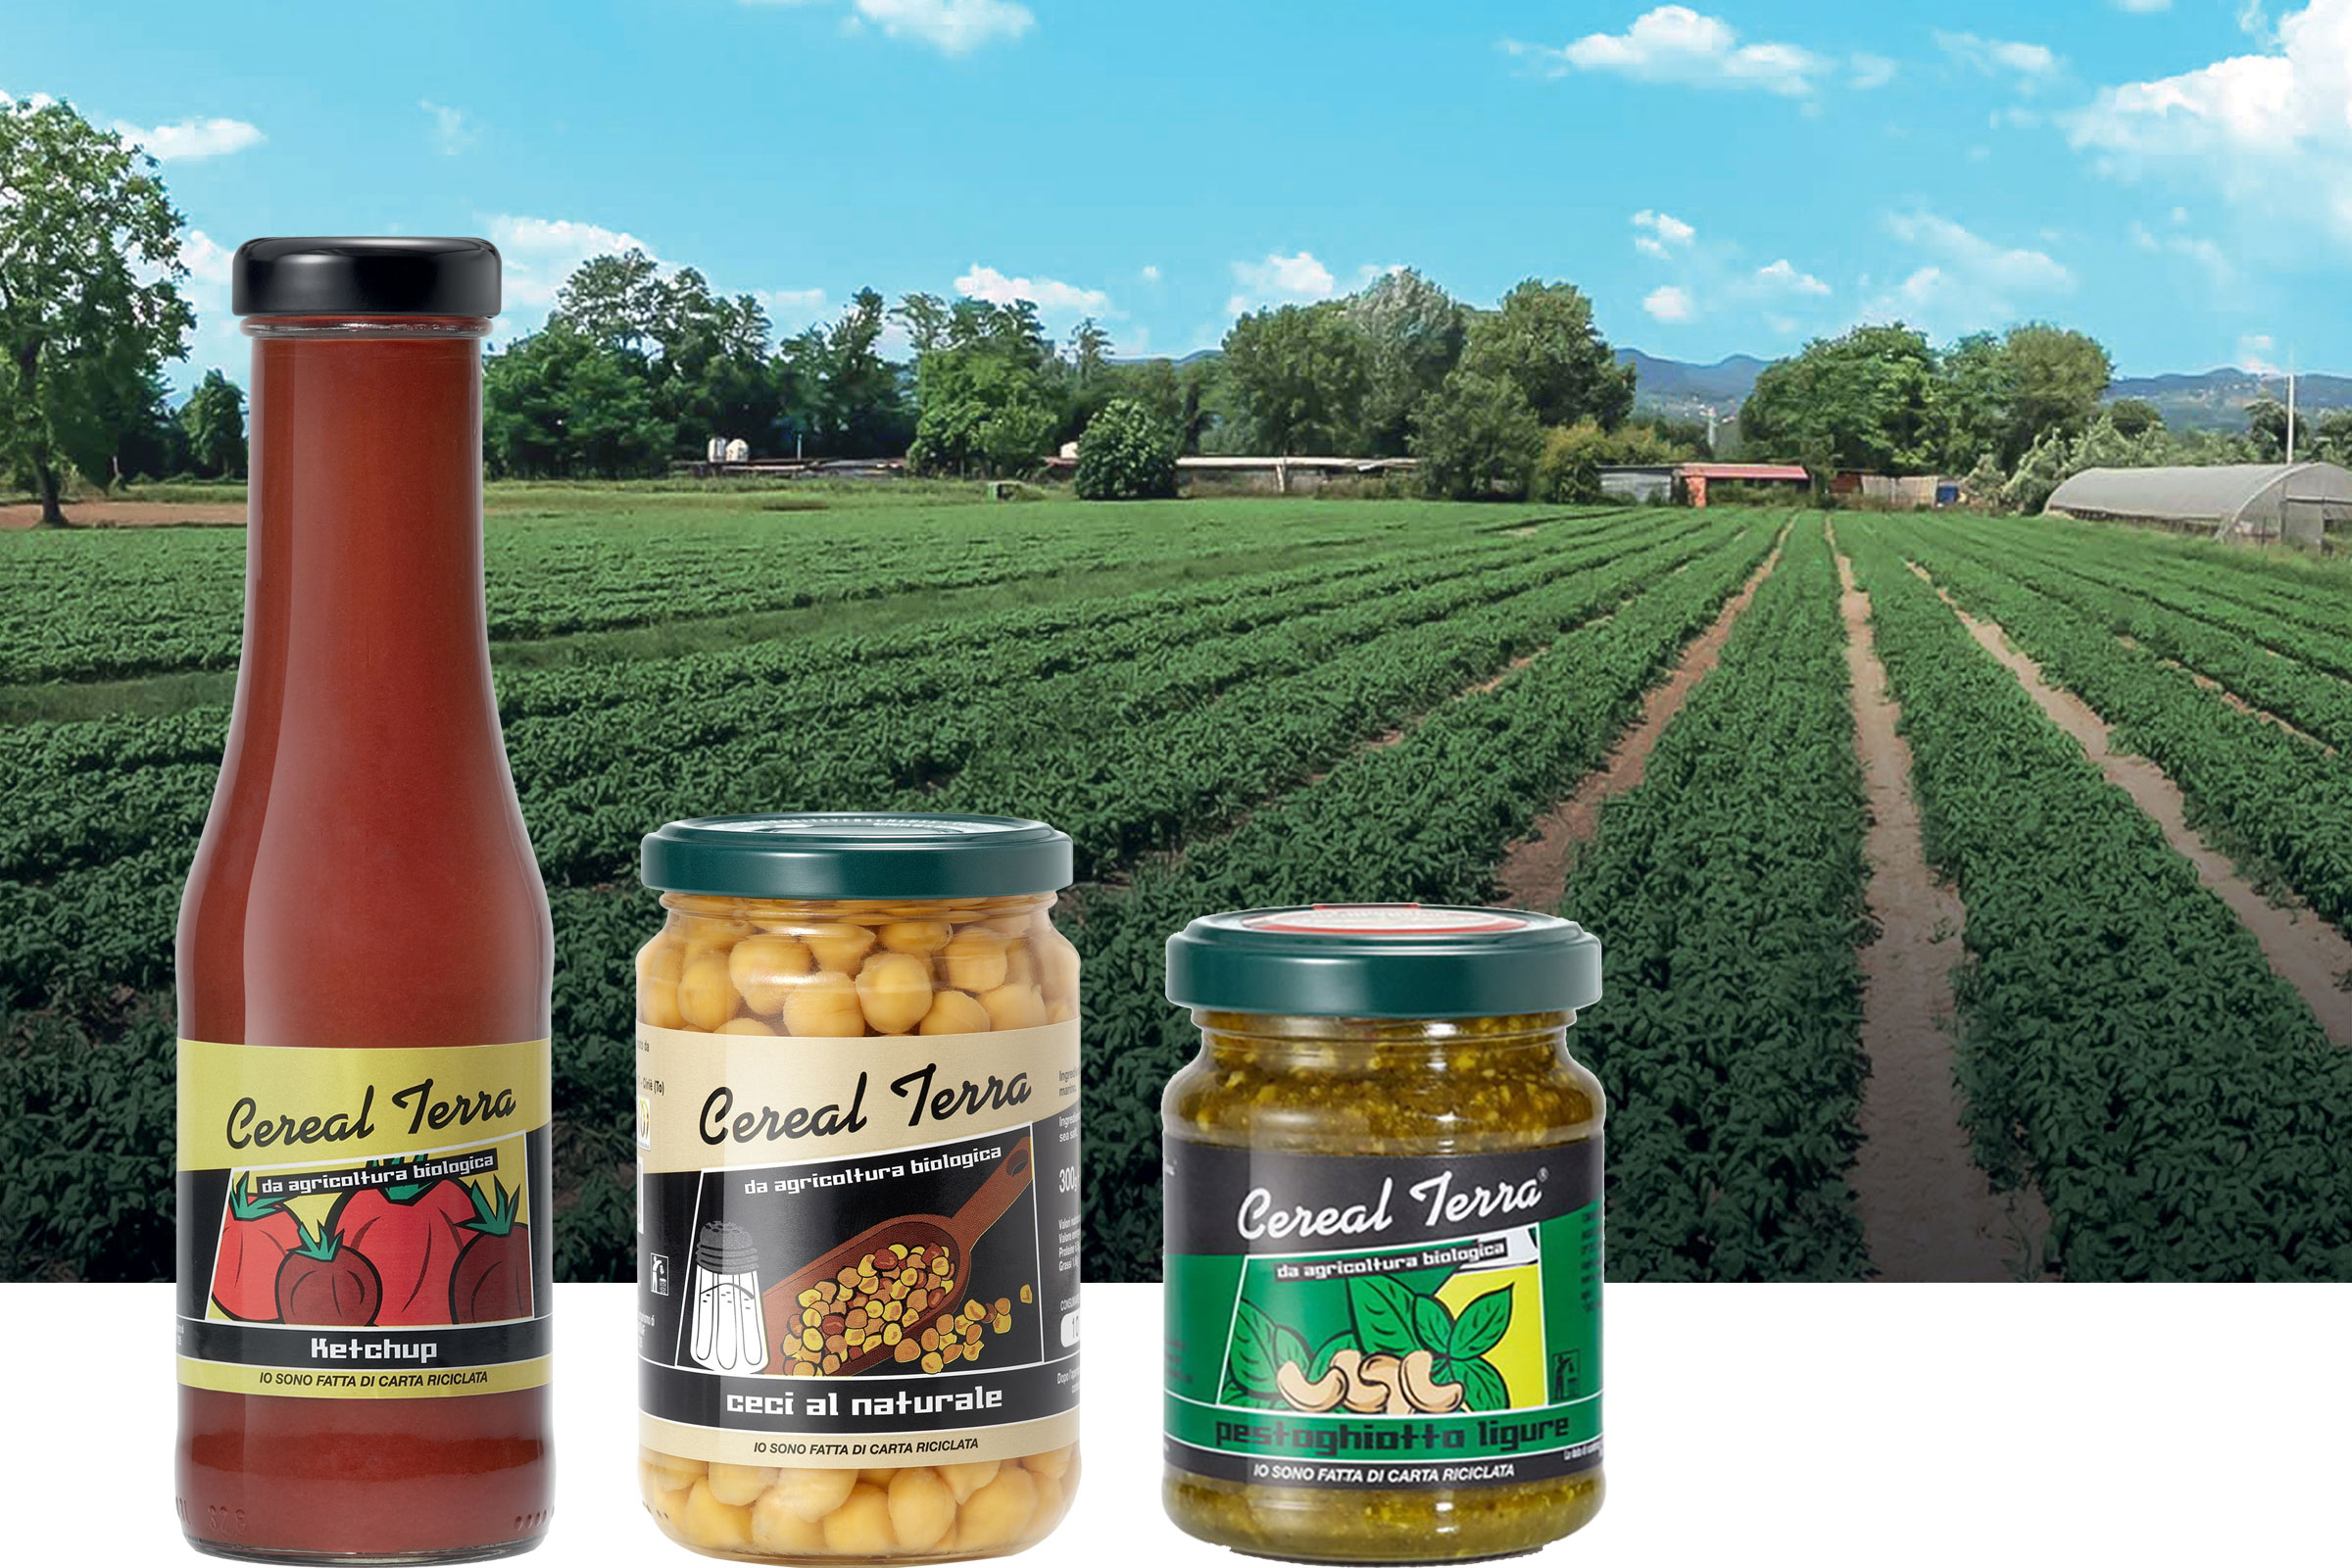 SMI solutions for Cereal Terra